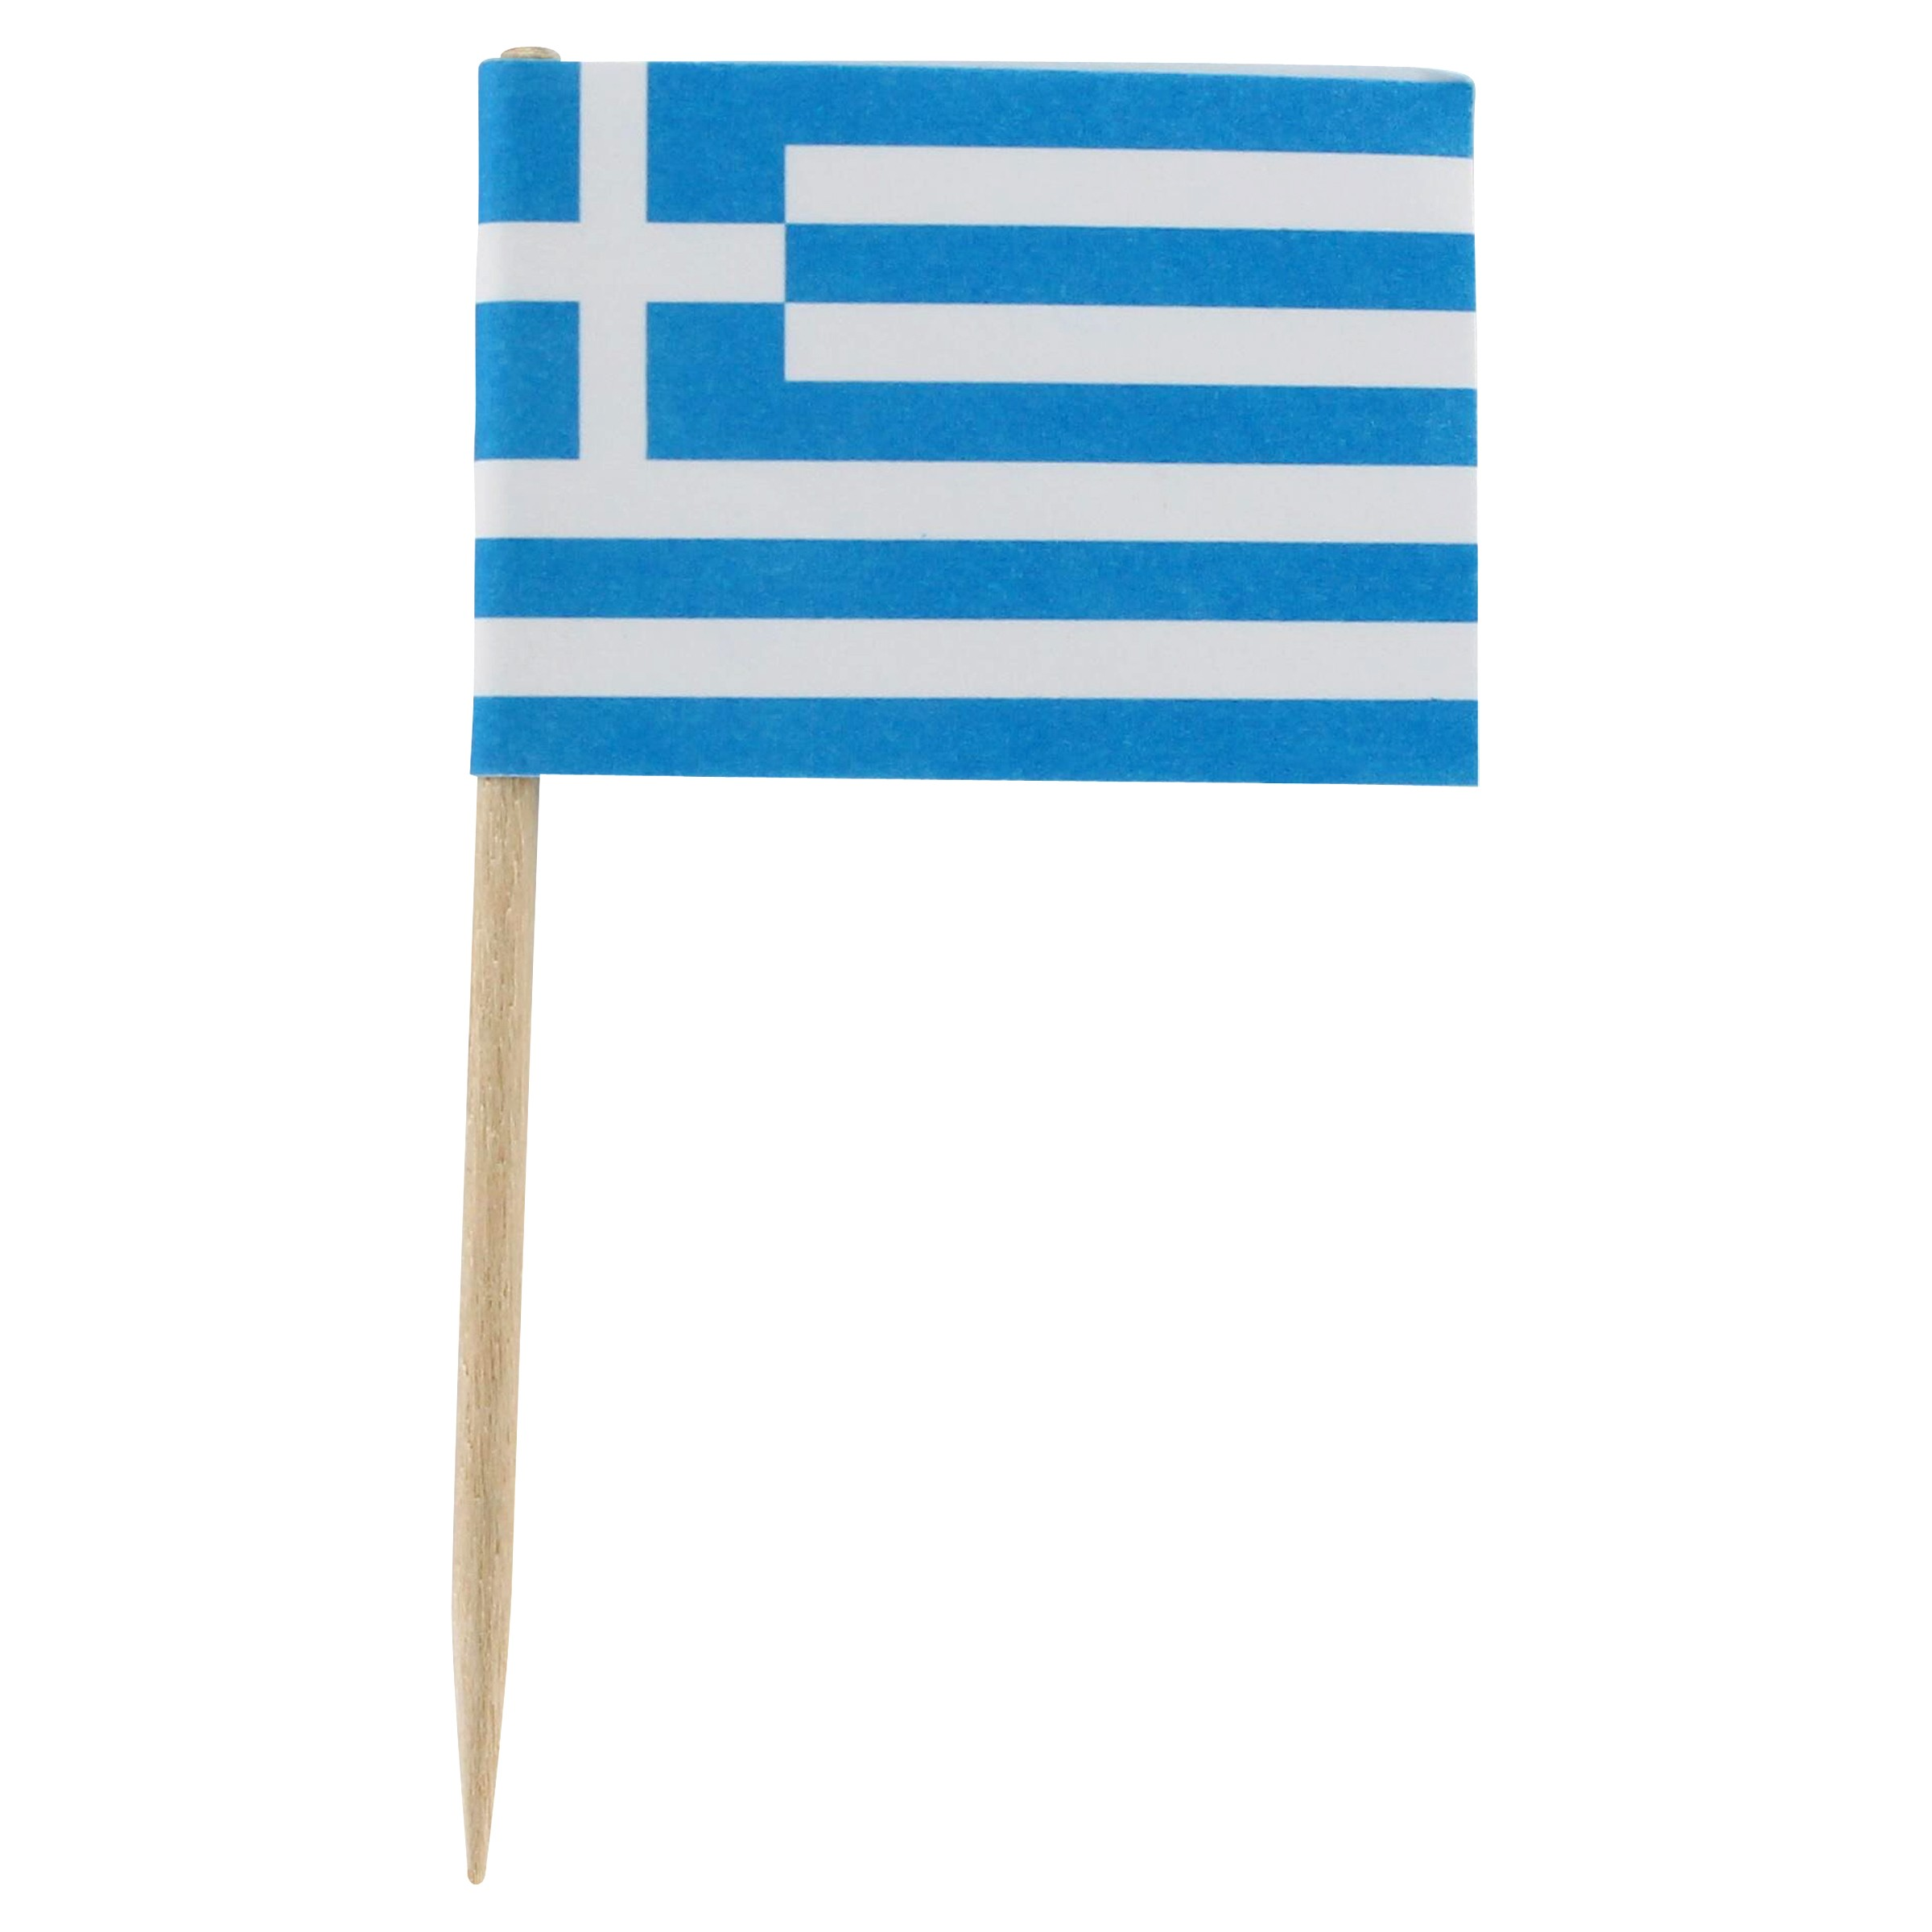 greek flag clipart at getdrawings com free for personal use greek